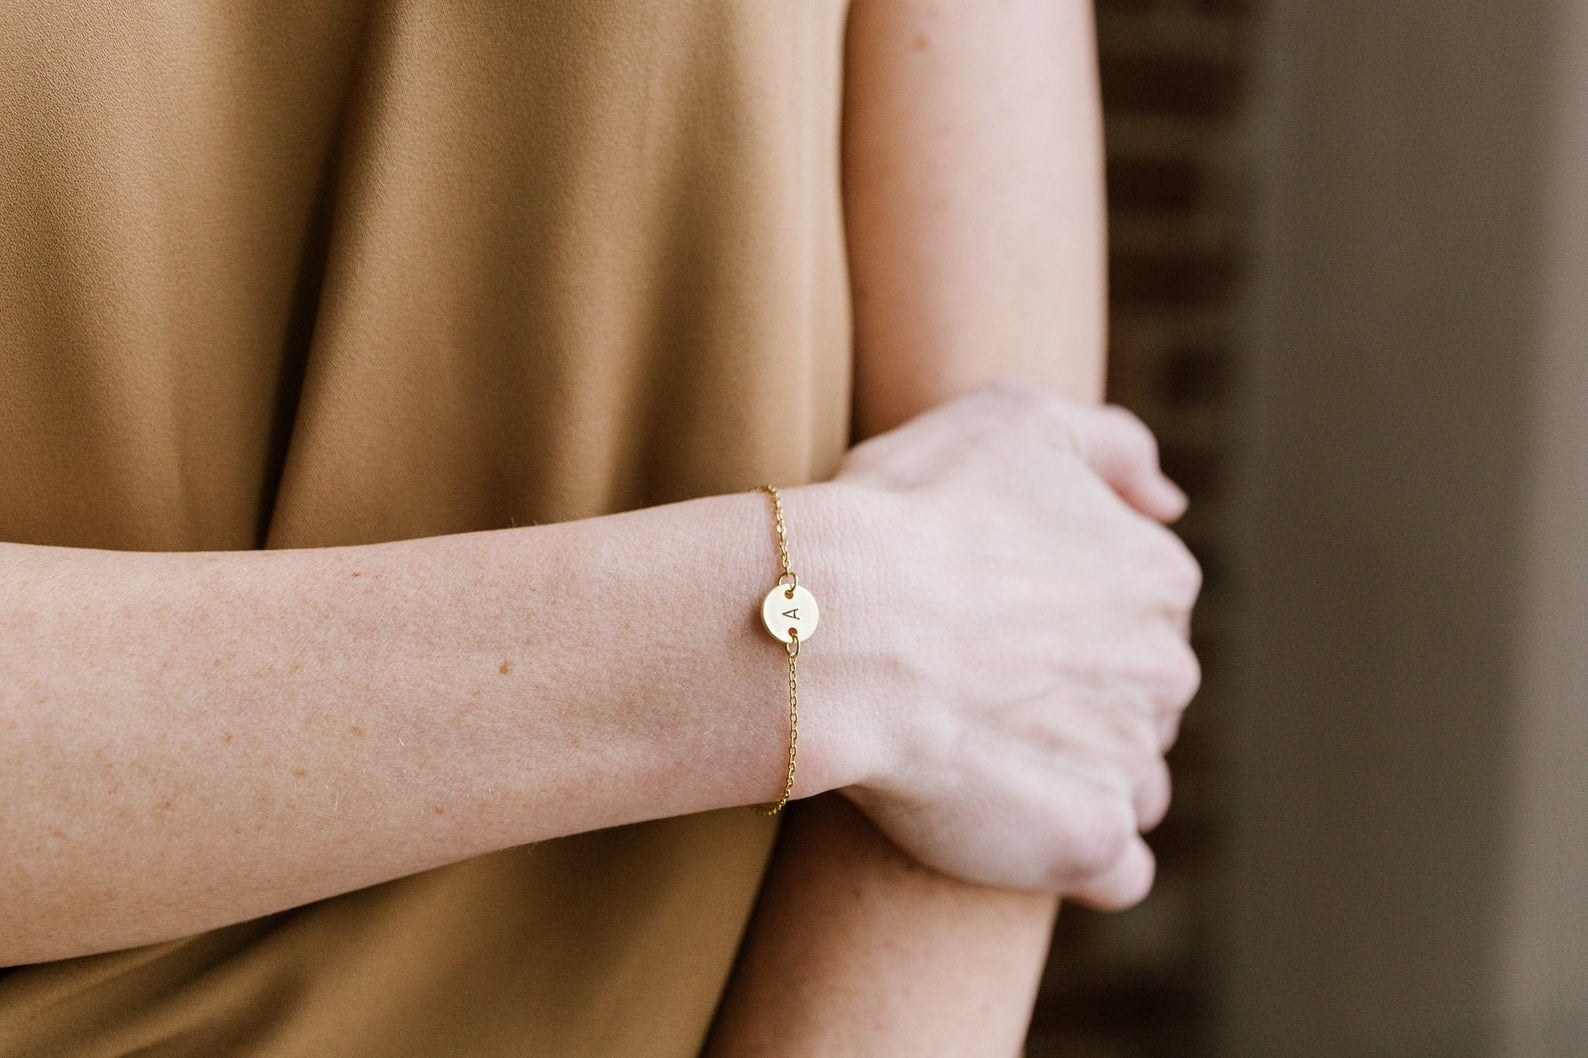 person wearing the initial bracelet